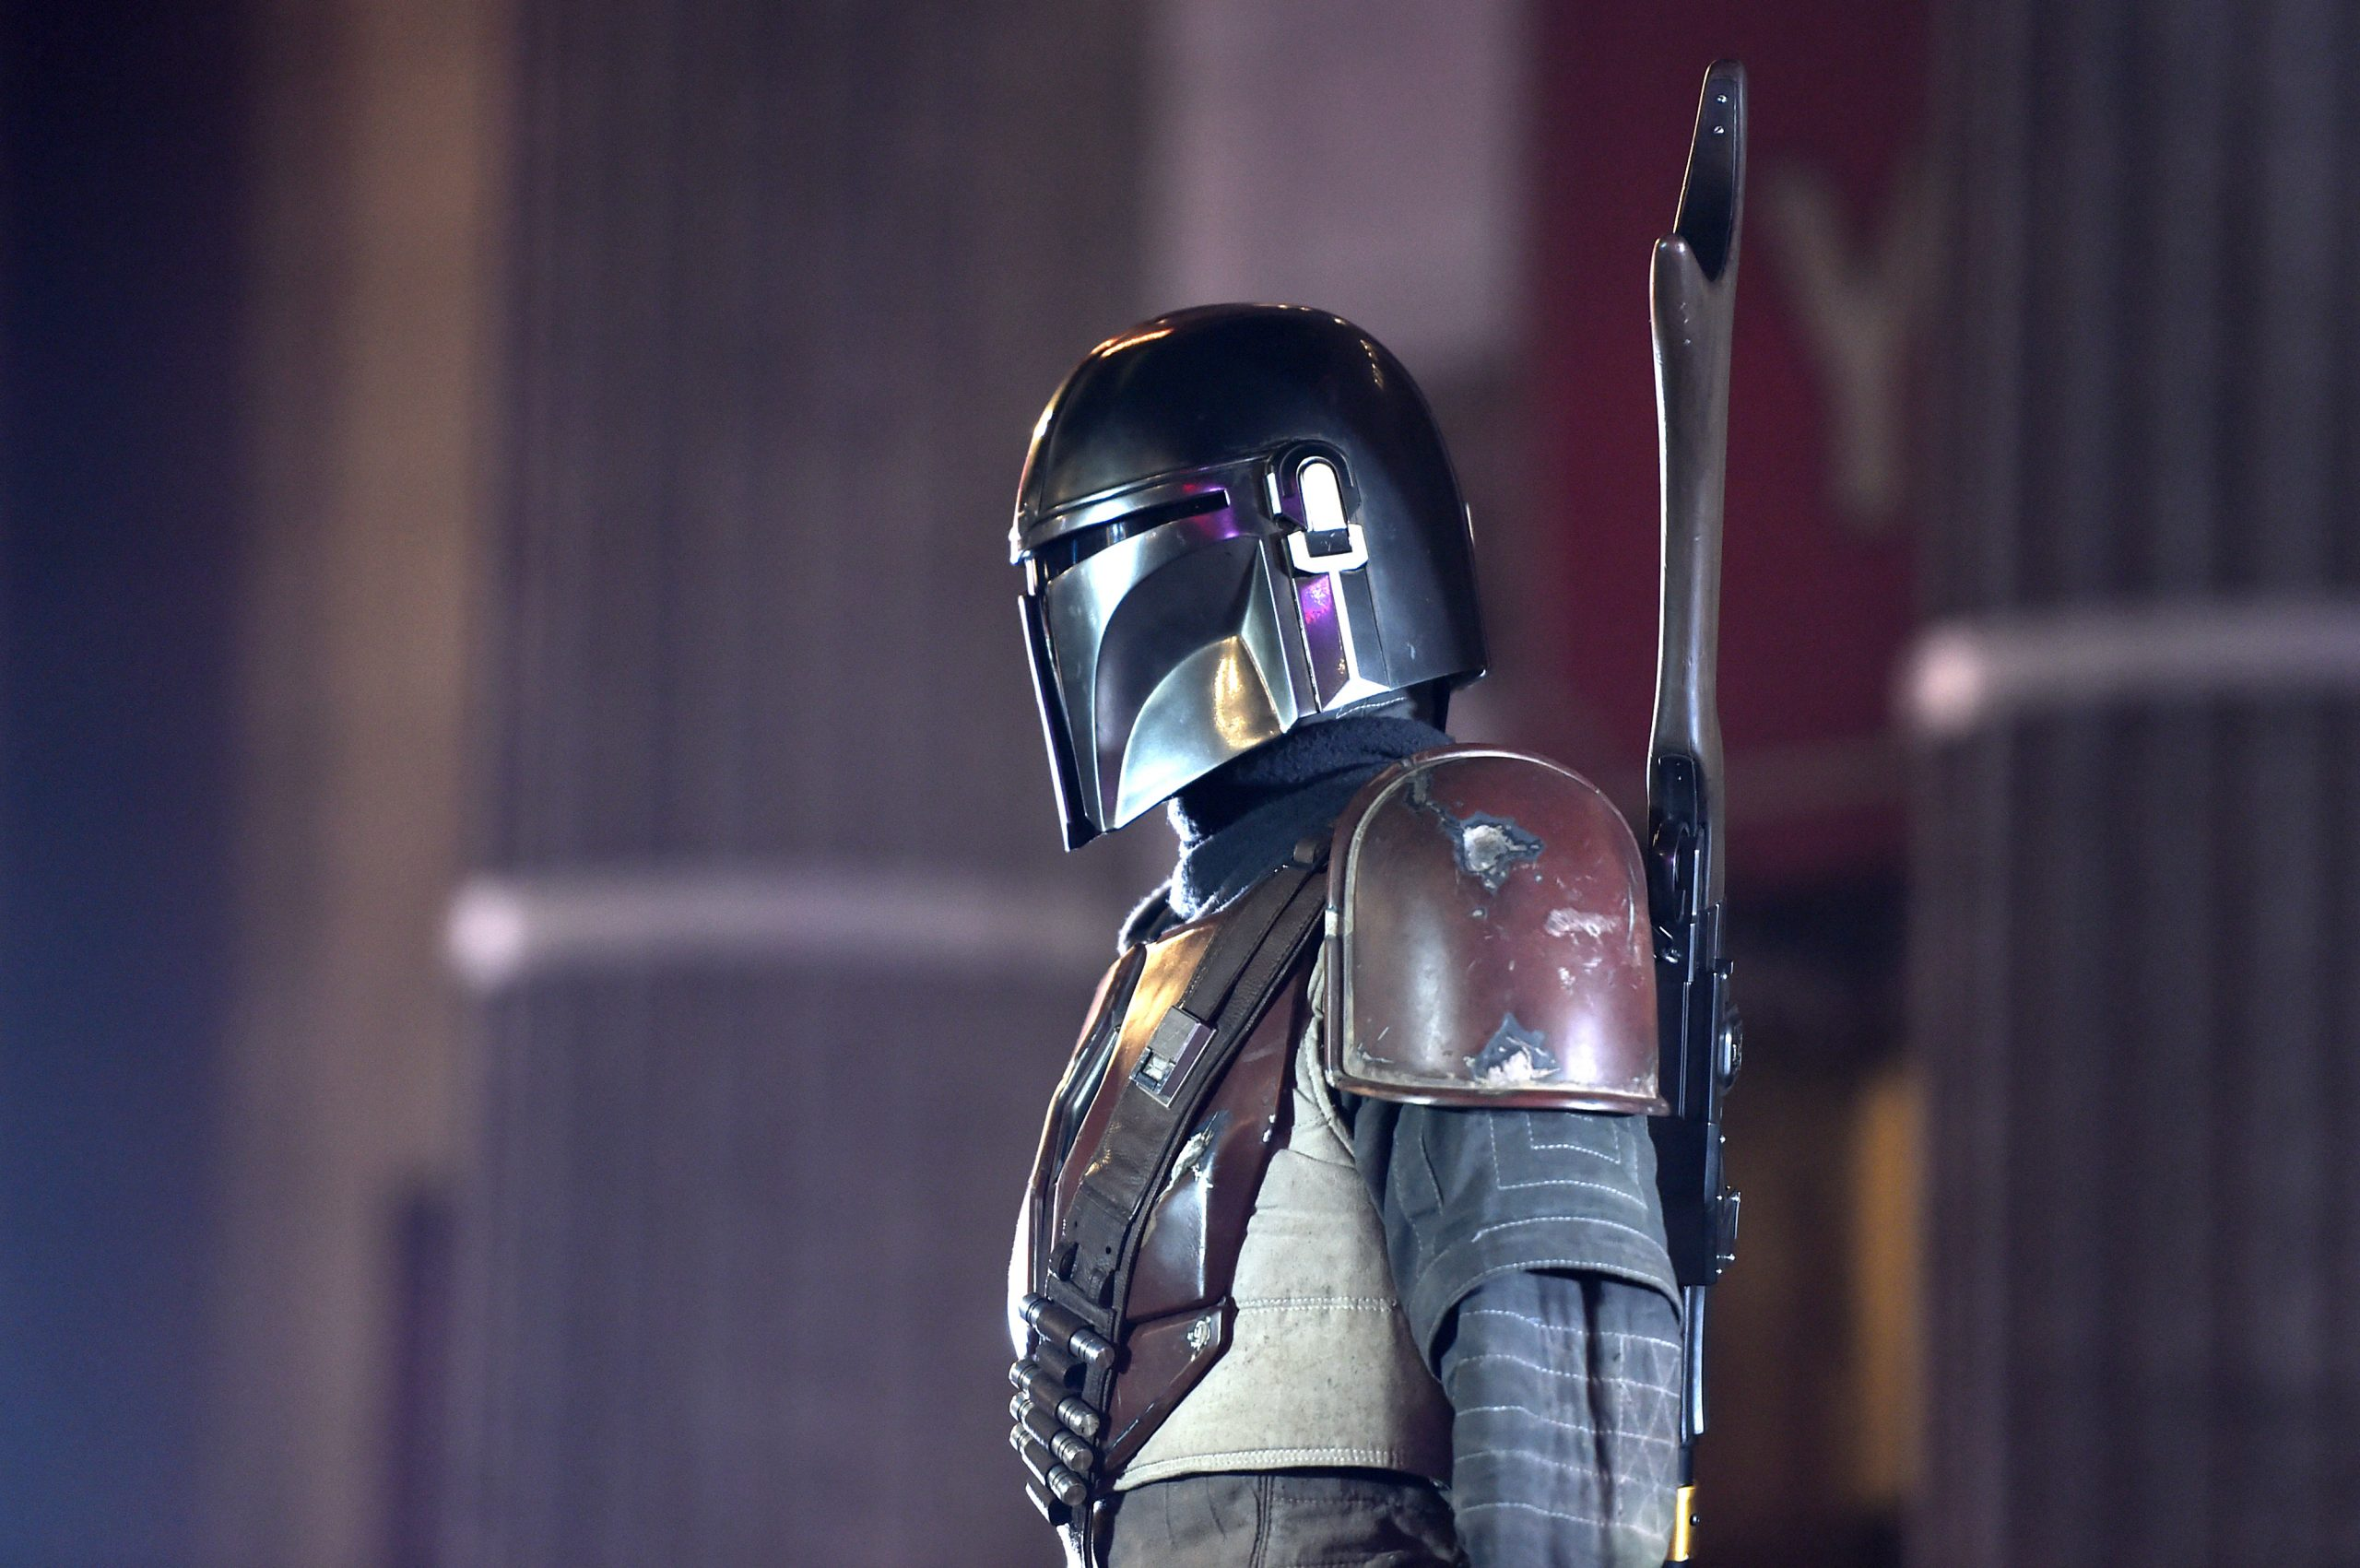 The Mandalorian Season 2 Release Date Is Oct 30 What Time Will Disney Drop New Episodes